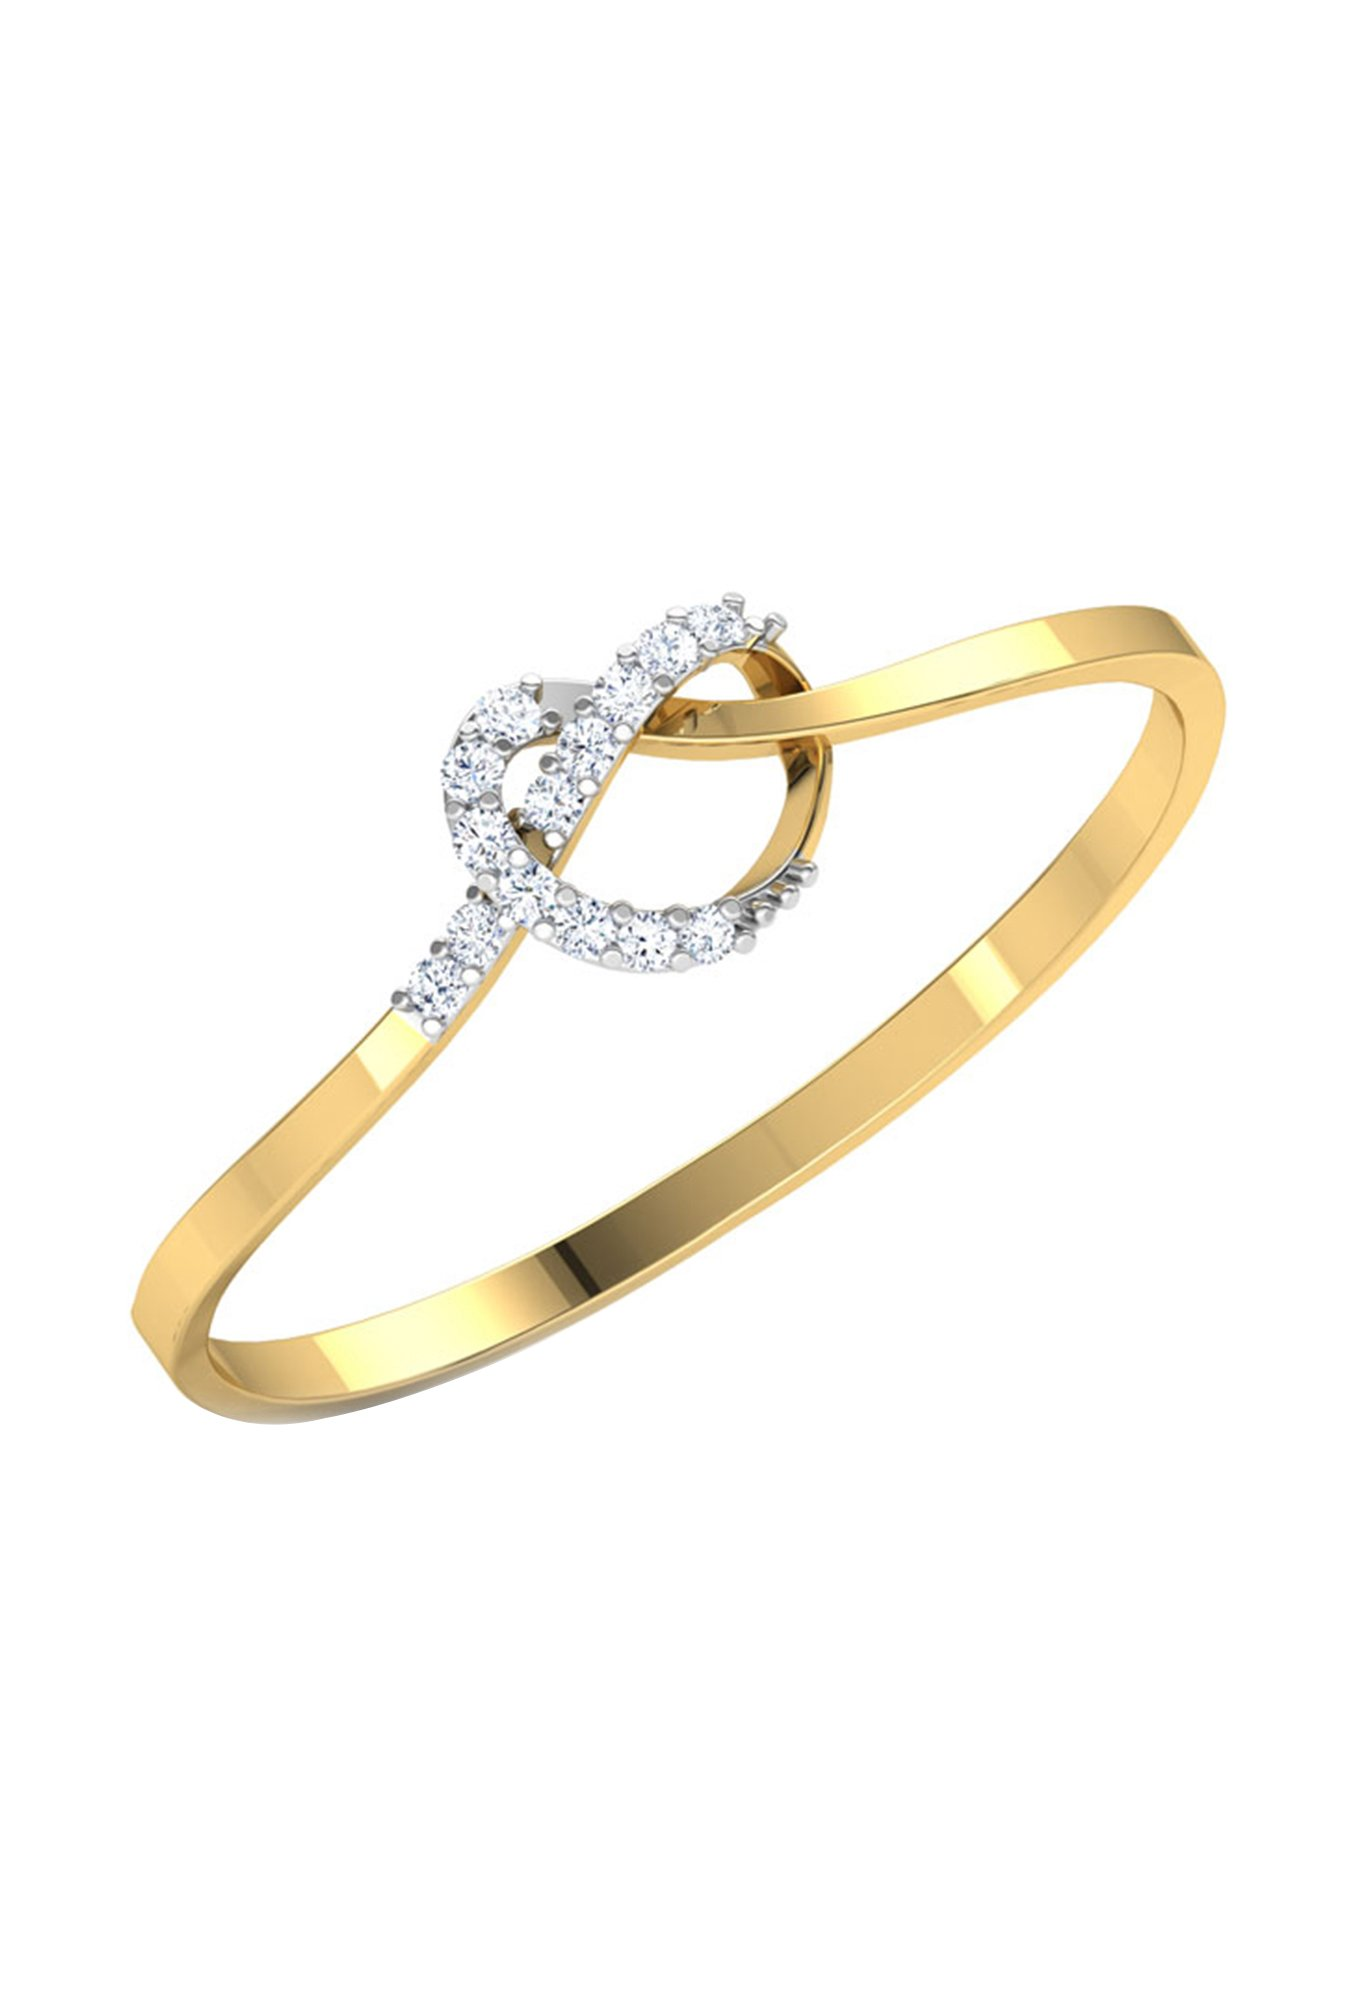 products wh talisman knot ring eternity gold kavantandsharart love yg bangle diamond yellow